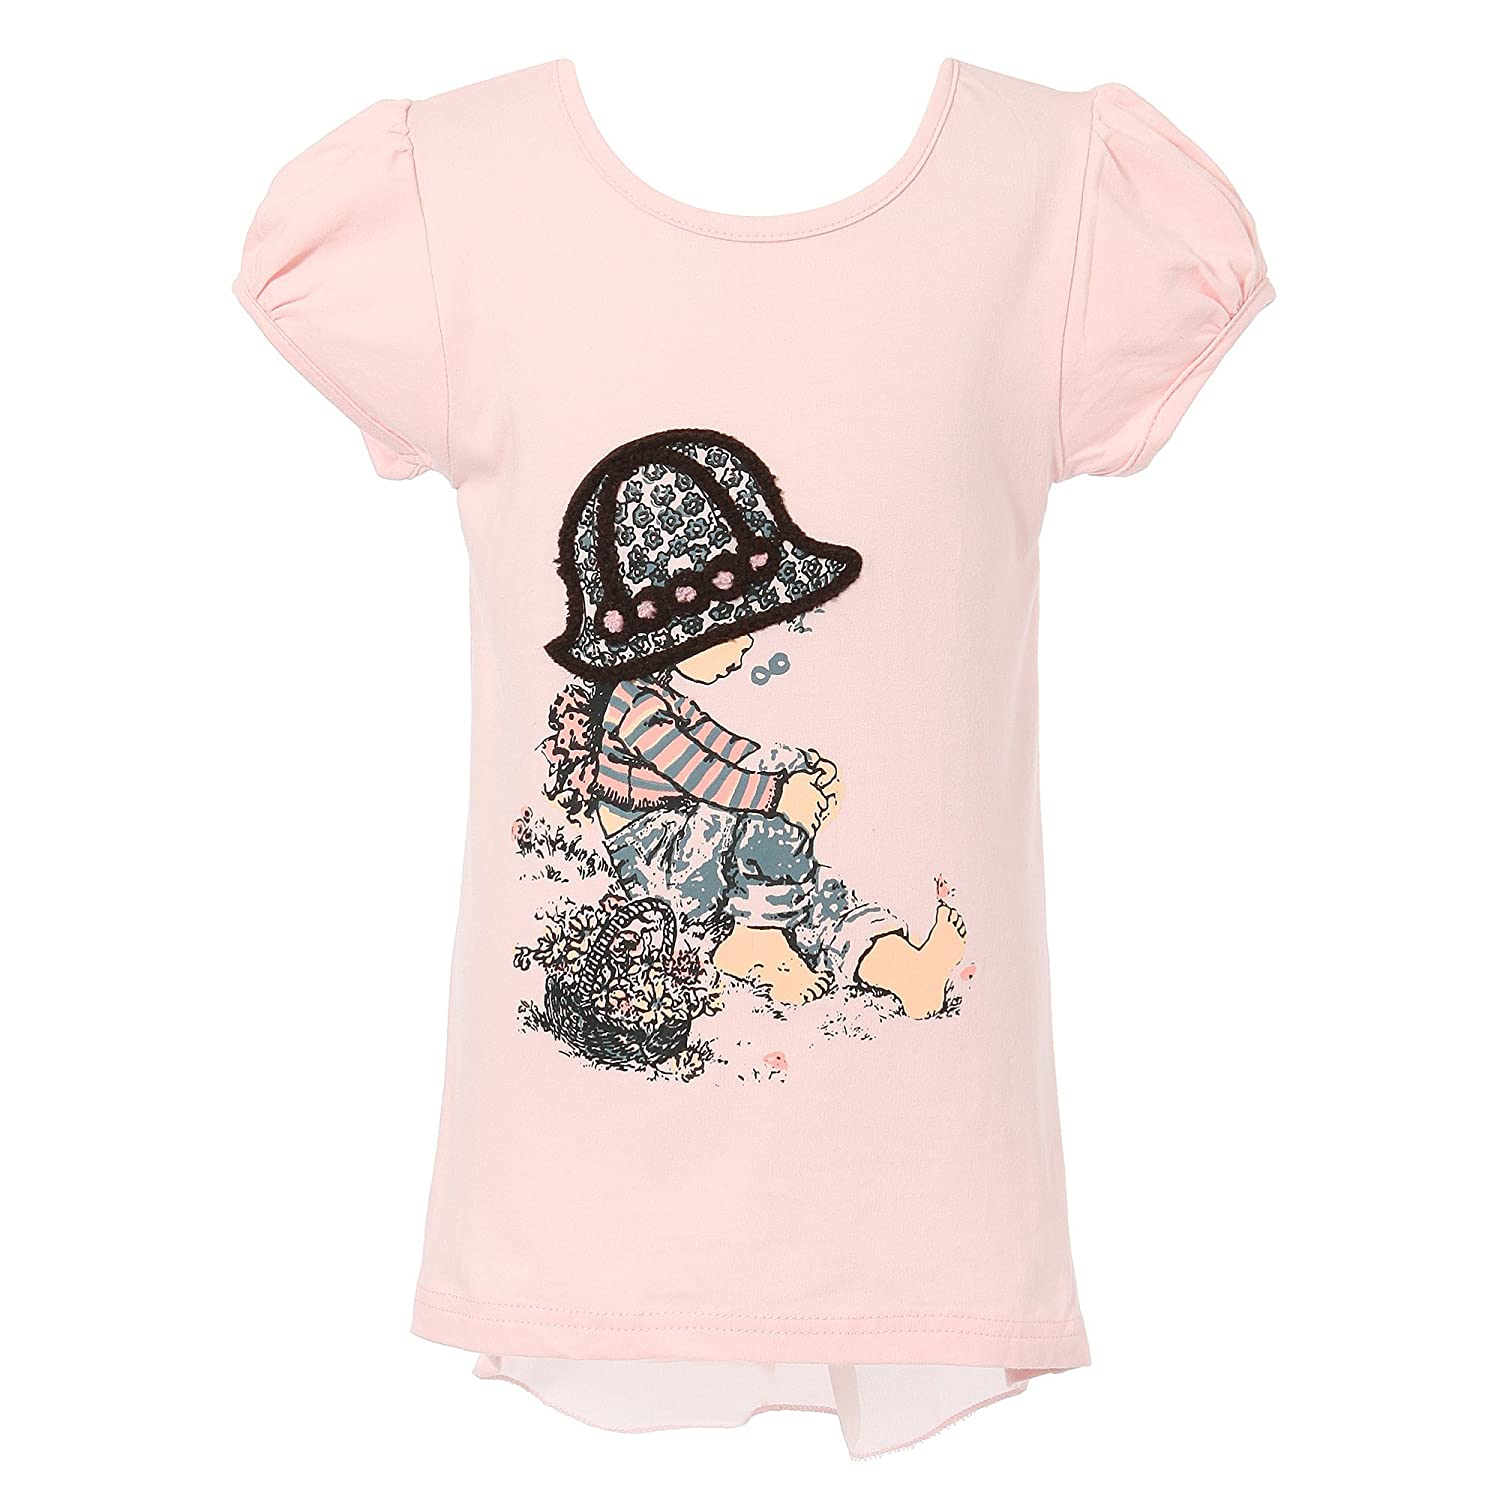 Richie House Girls' Short Sleeve T-Shirt with Girl Size 2-8 RH1888